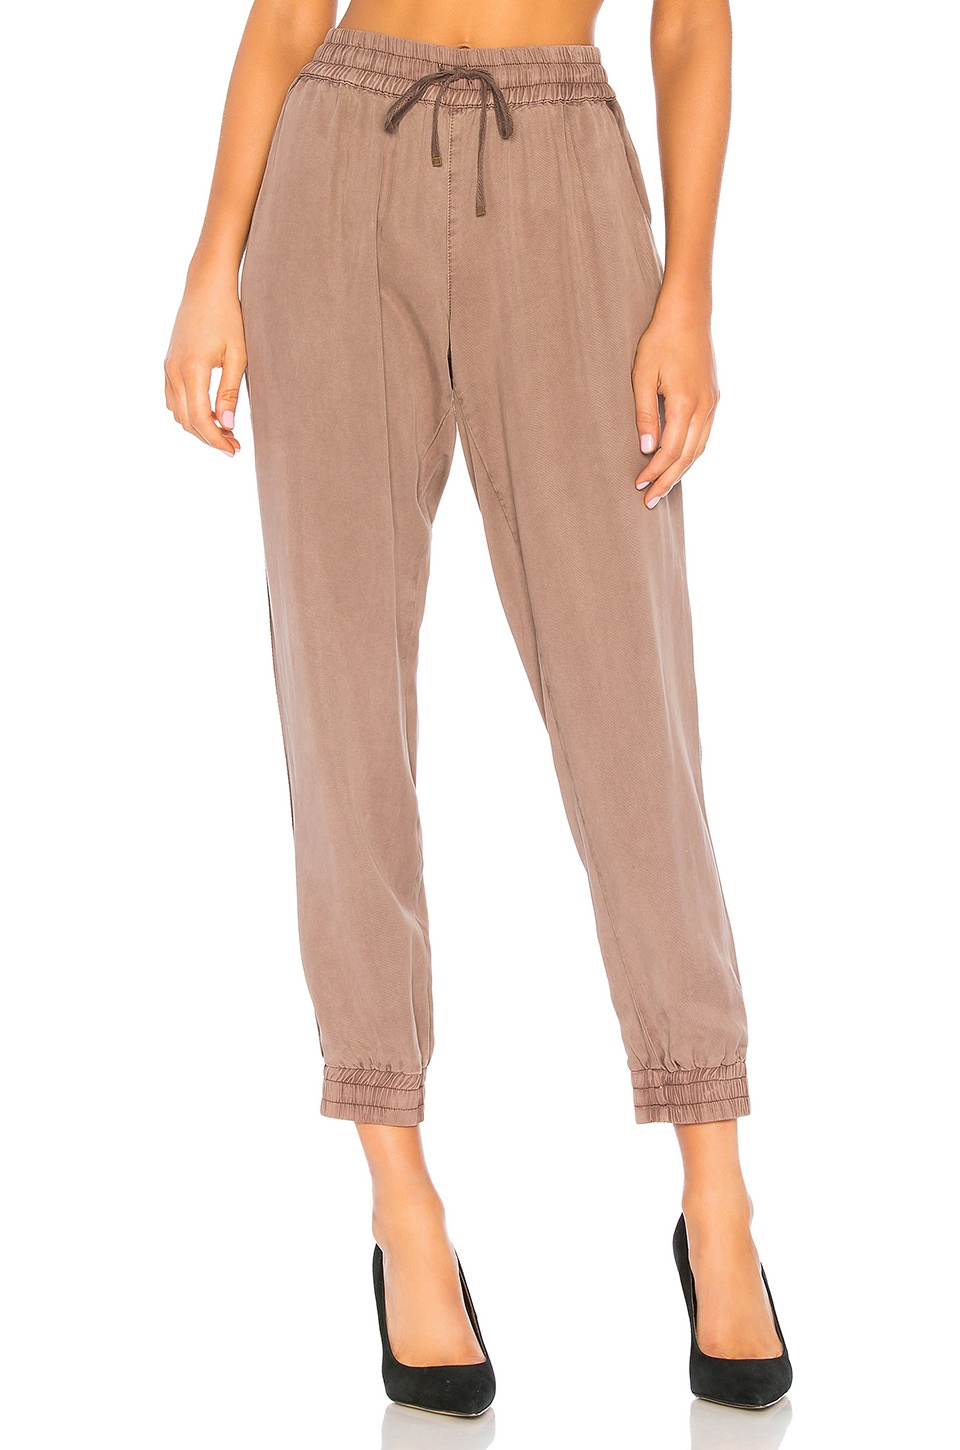 YFB CLOTHING Ollie Pant in Dusk